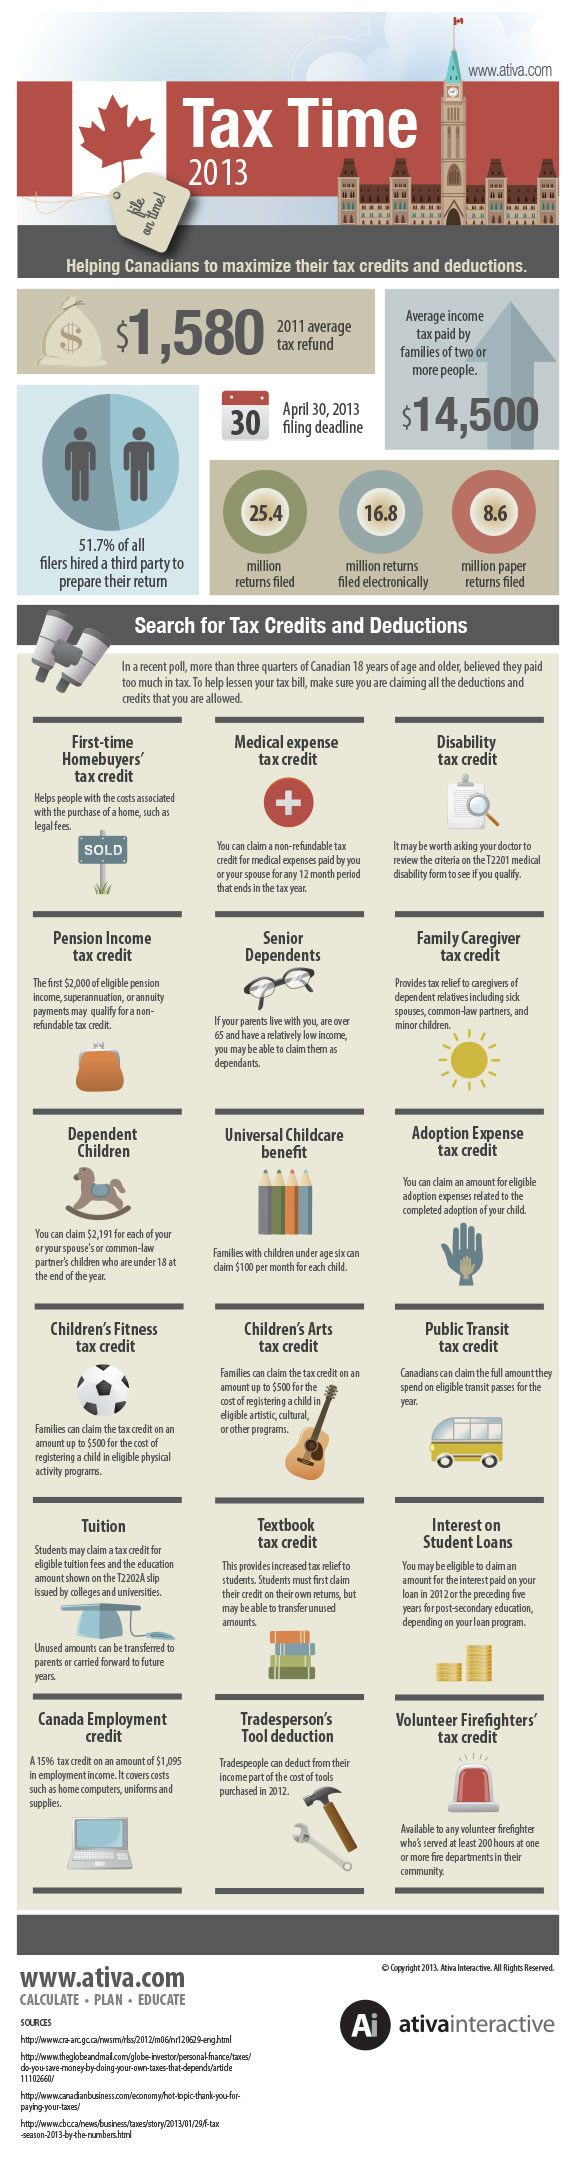 Infographic: 2013 Tax Tips for Canadians